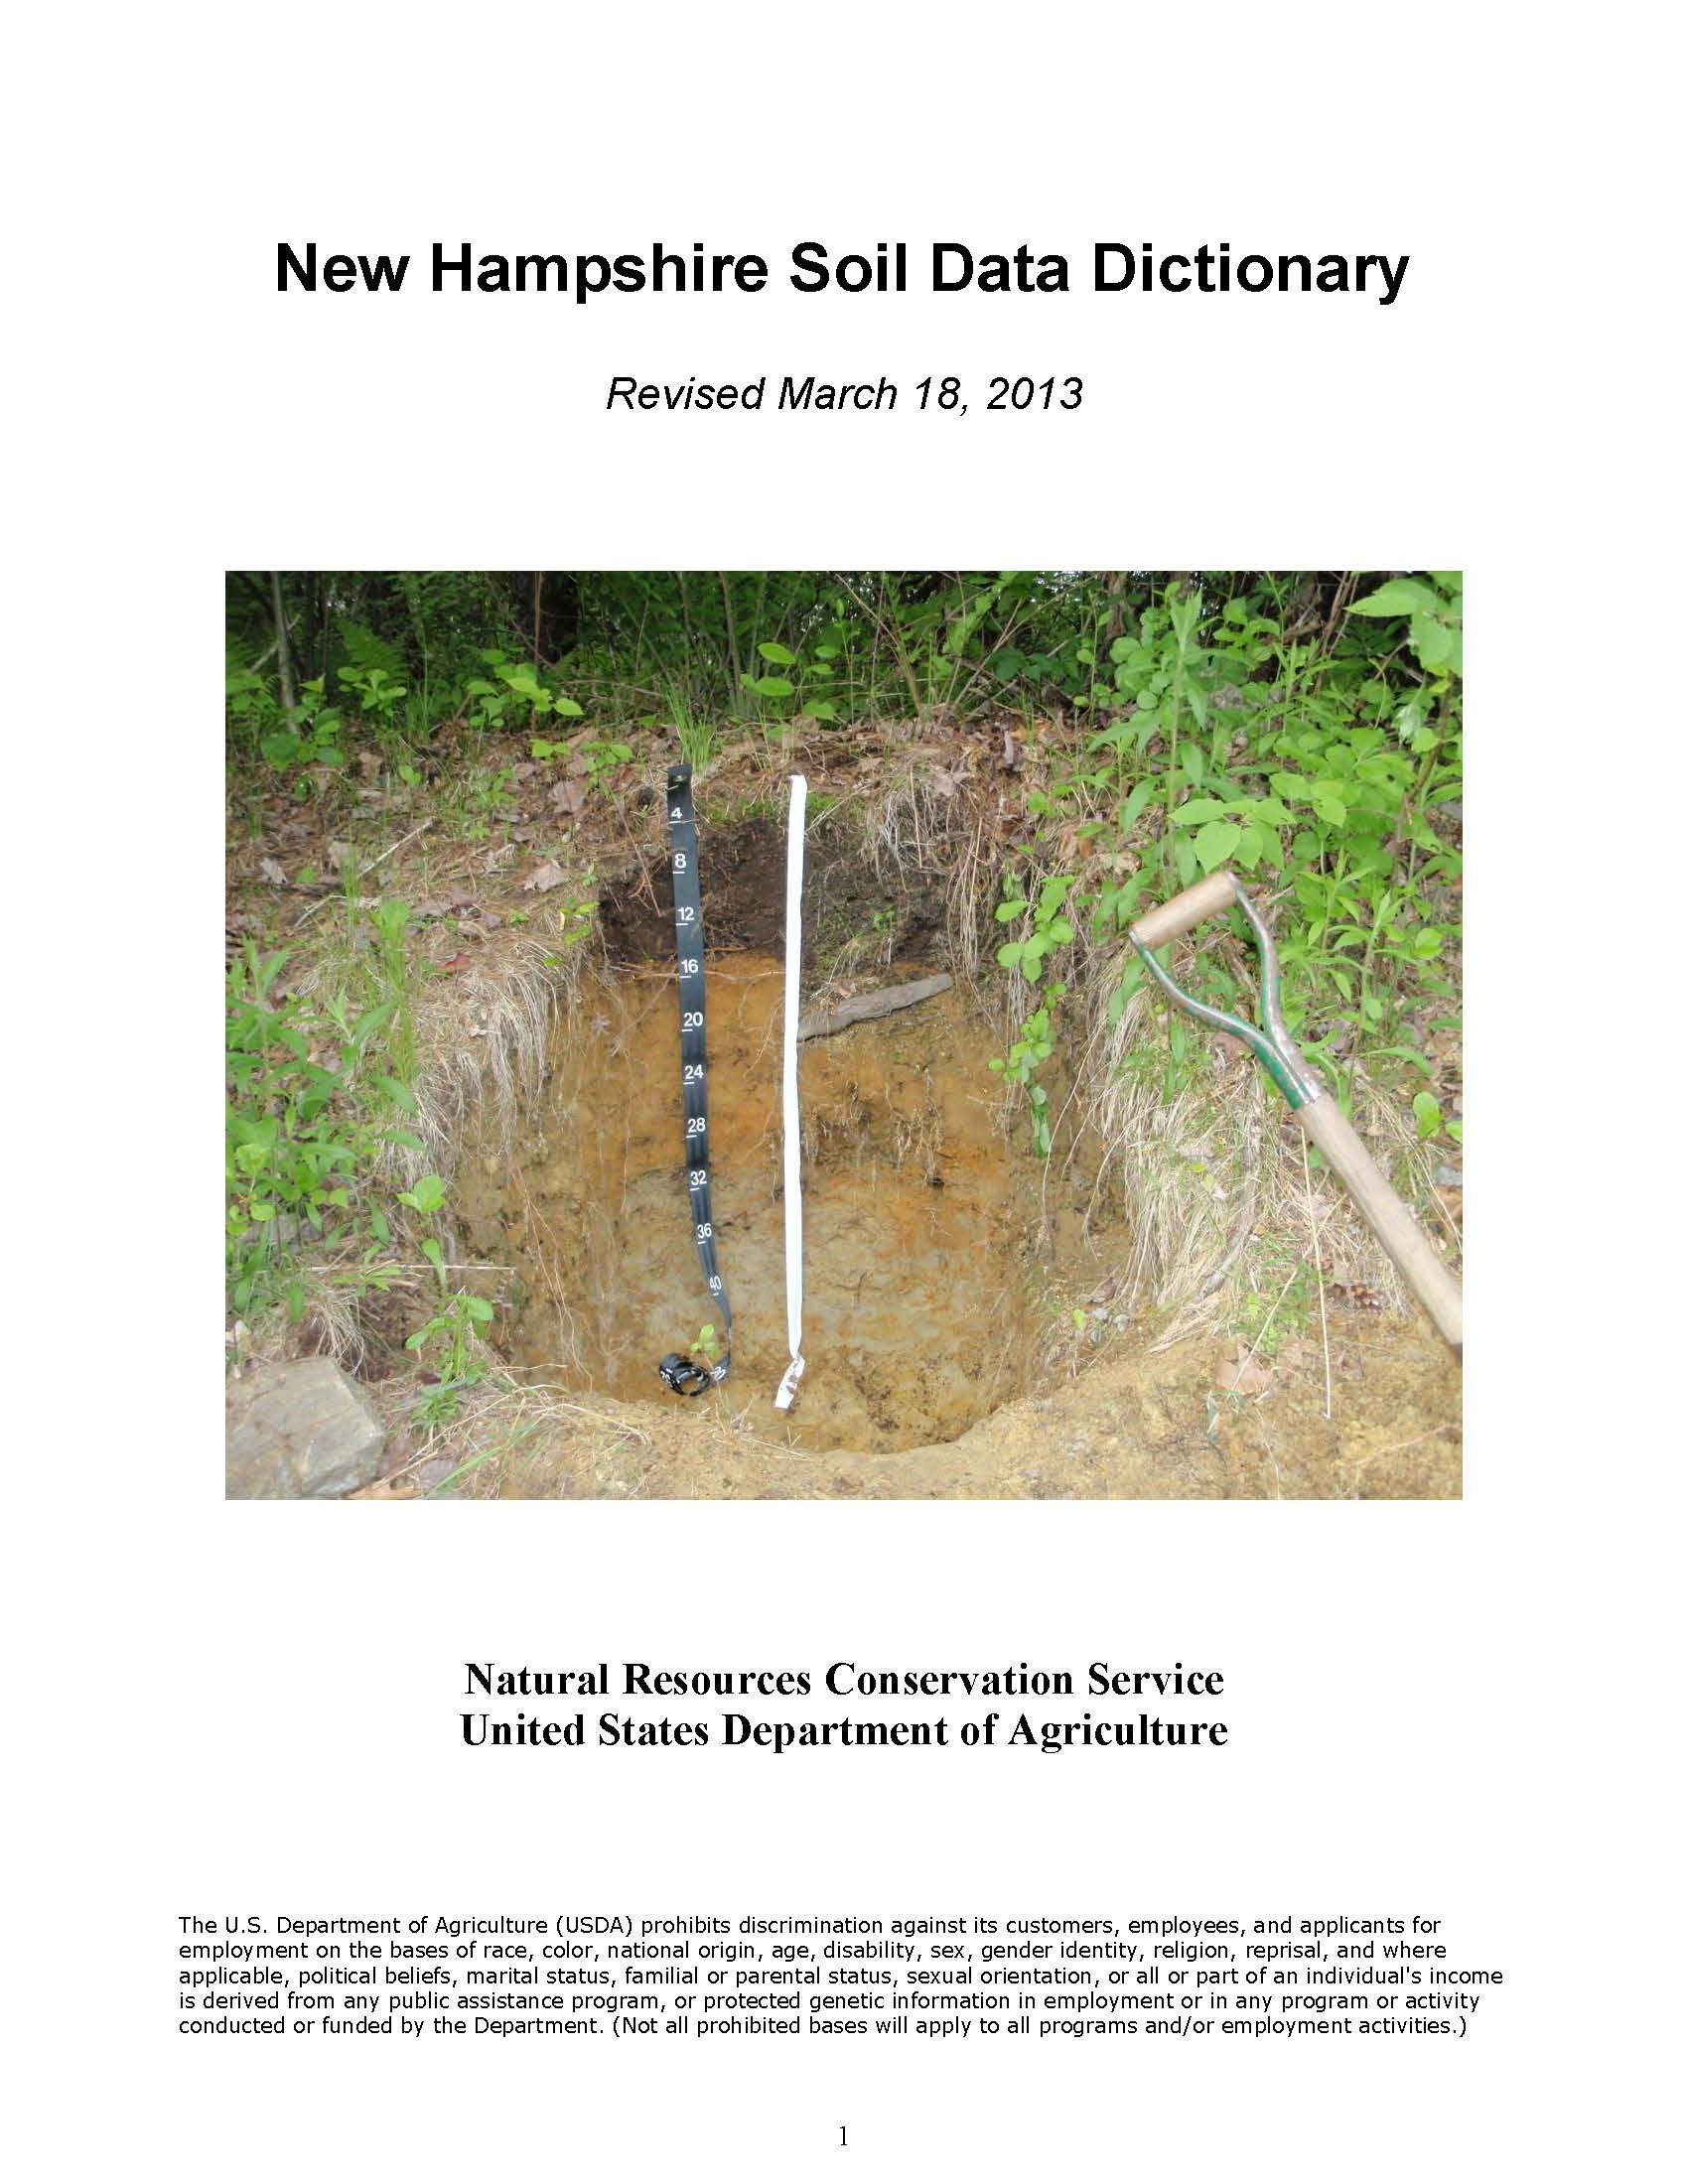 Soil Data Dictionary